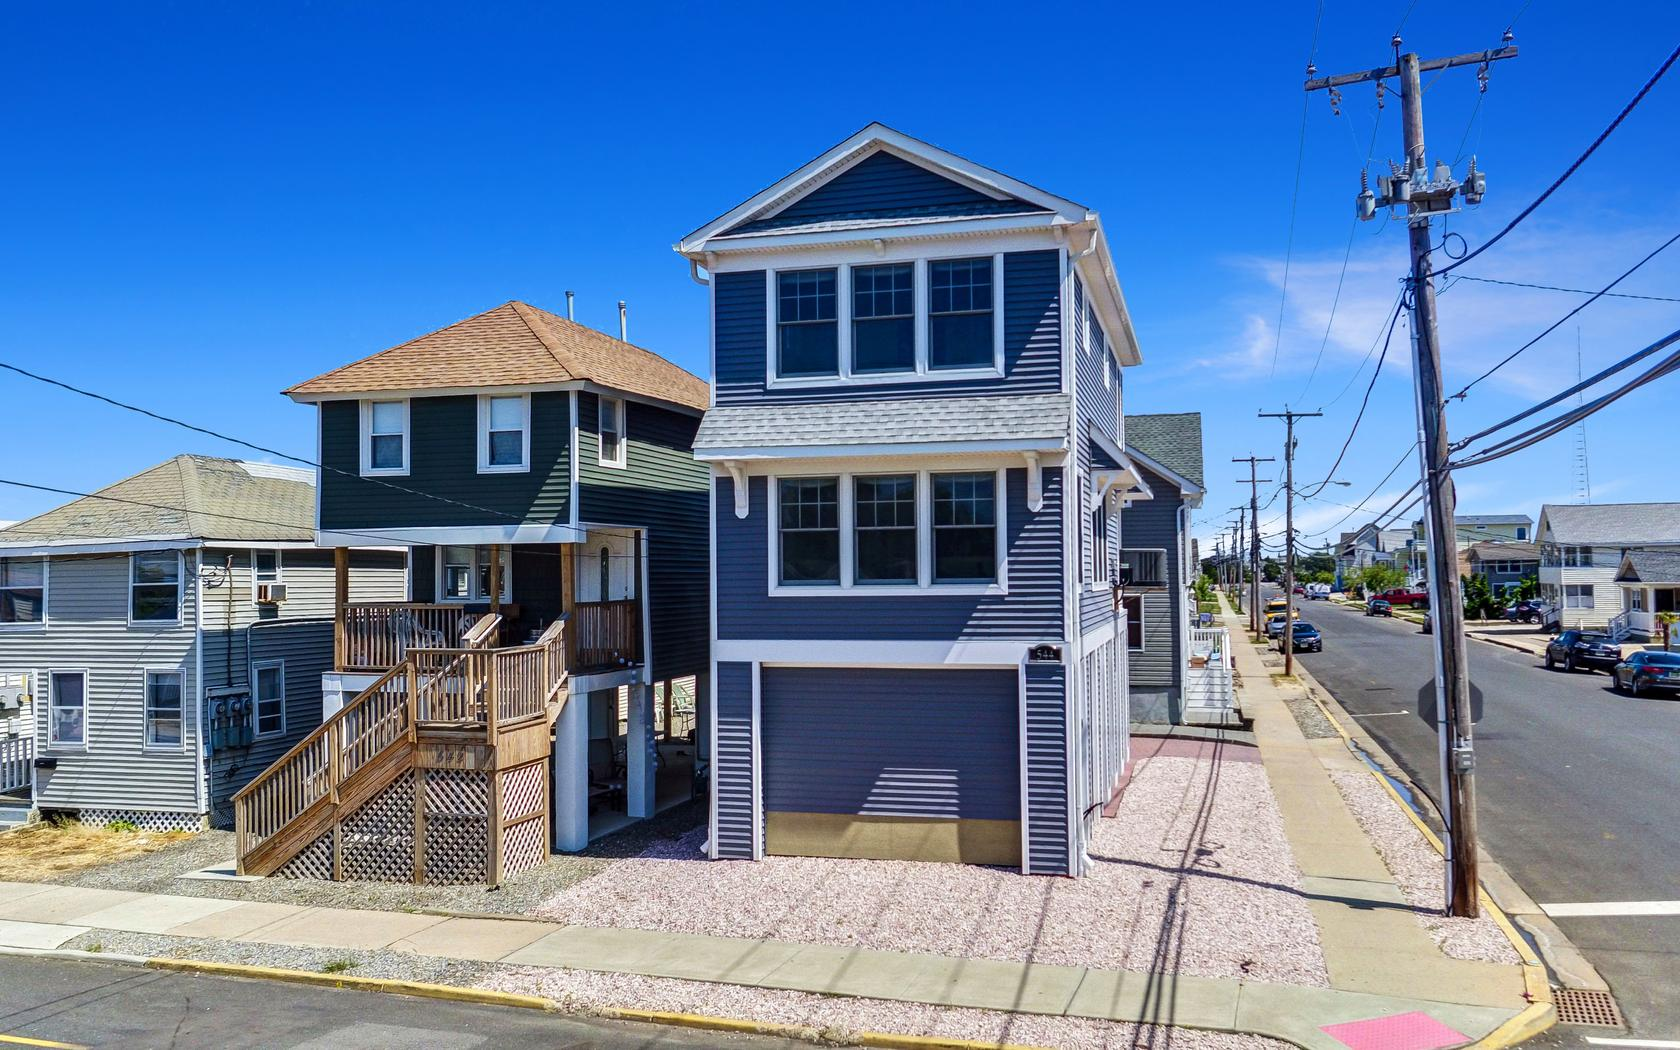 Single Family Home for Sale at Soho Of The Jersey Shore 544 Brielle Rd Manasquan, New Jersey 08736 United States